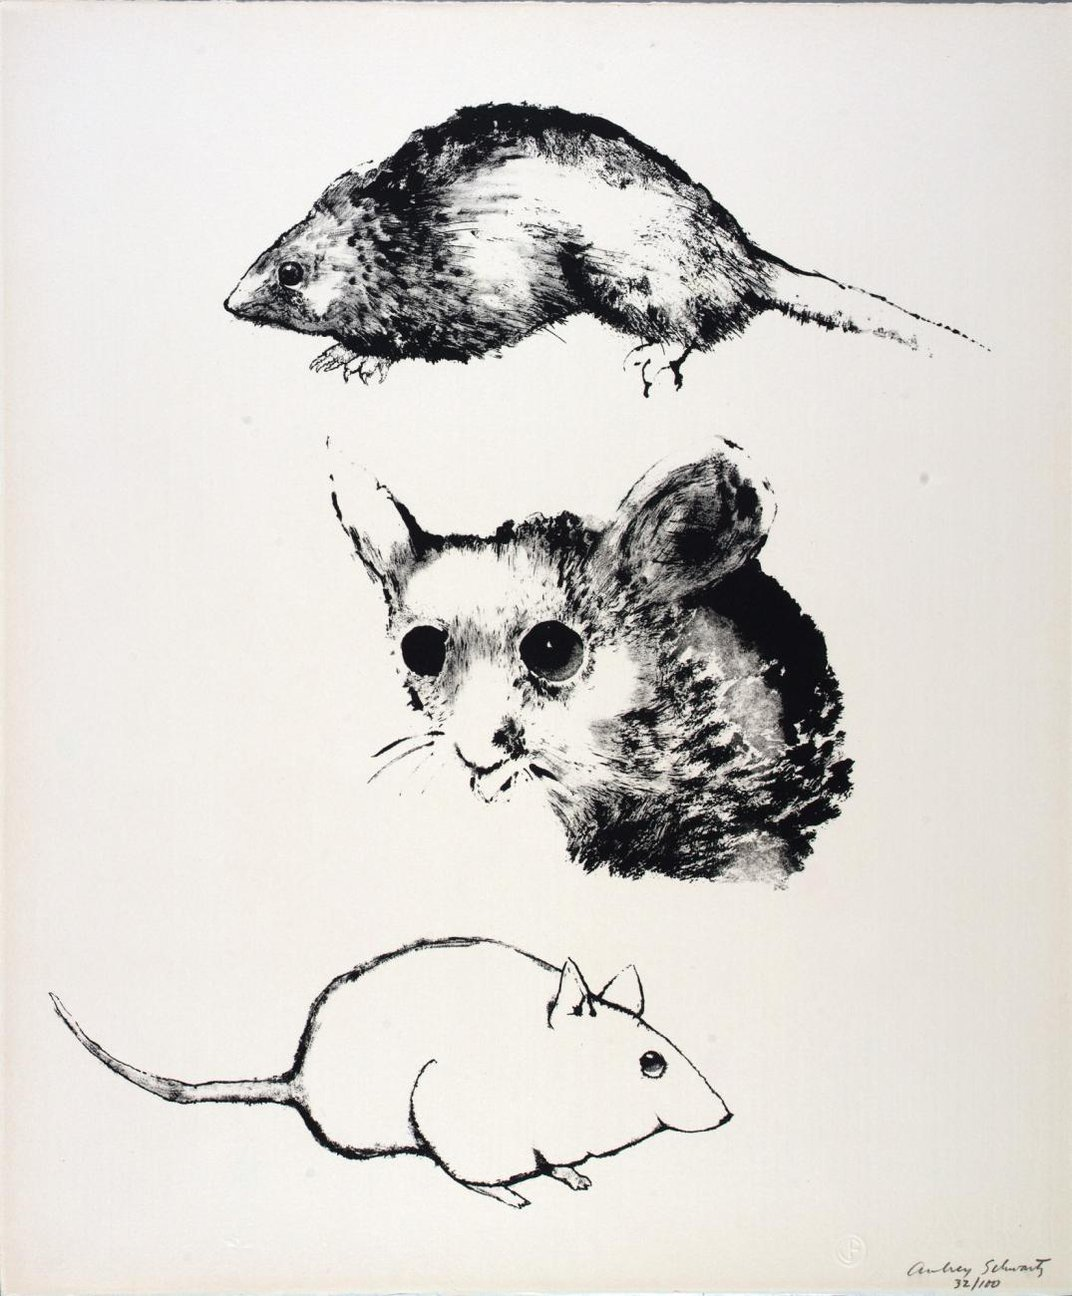 A drawing of mice.